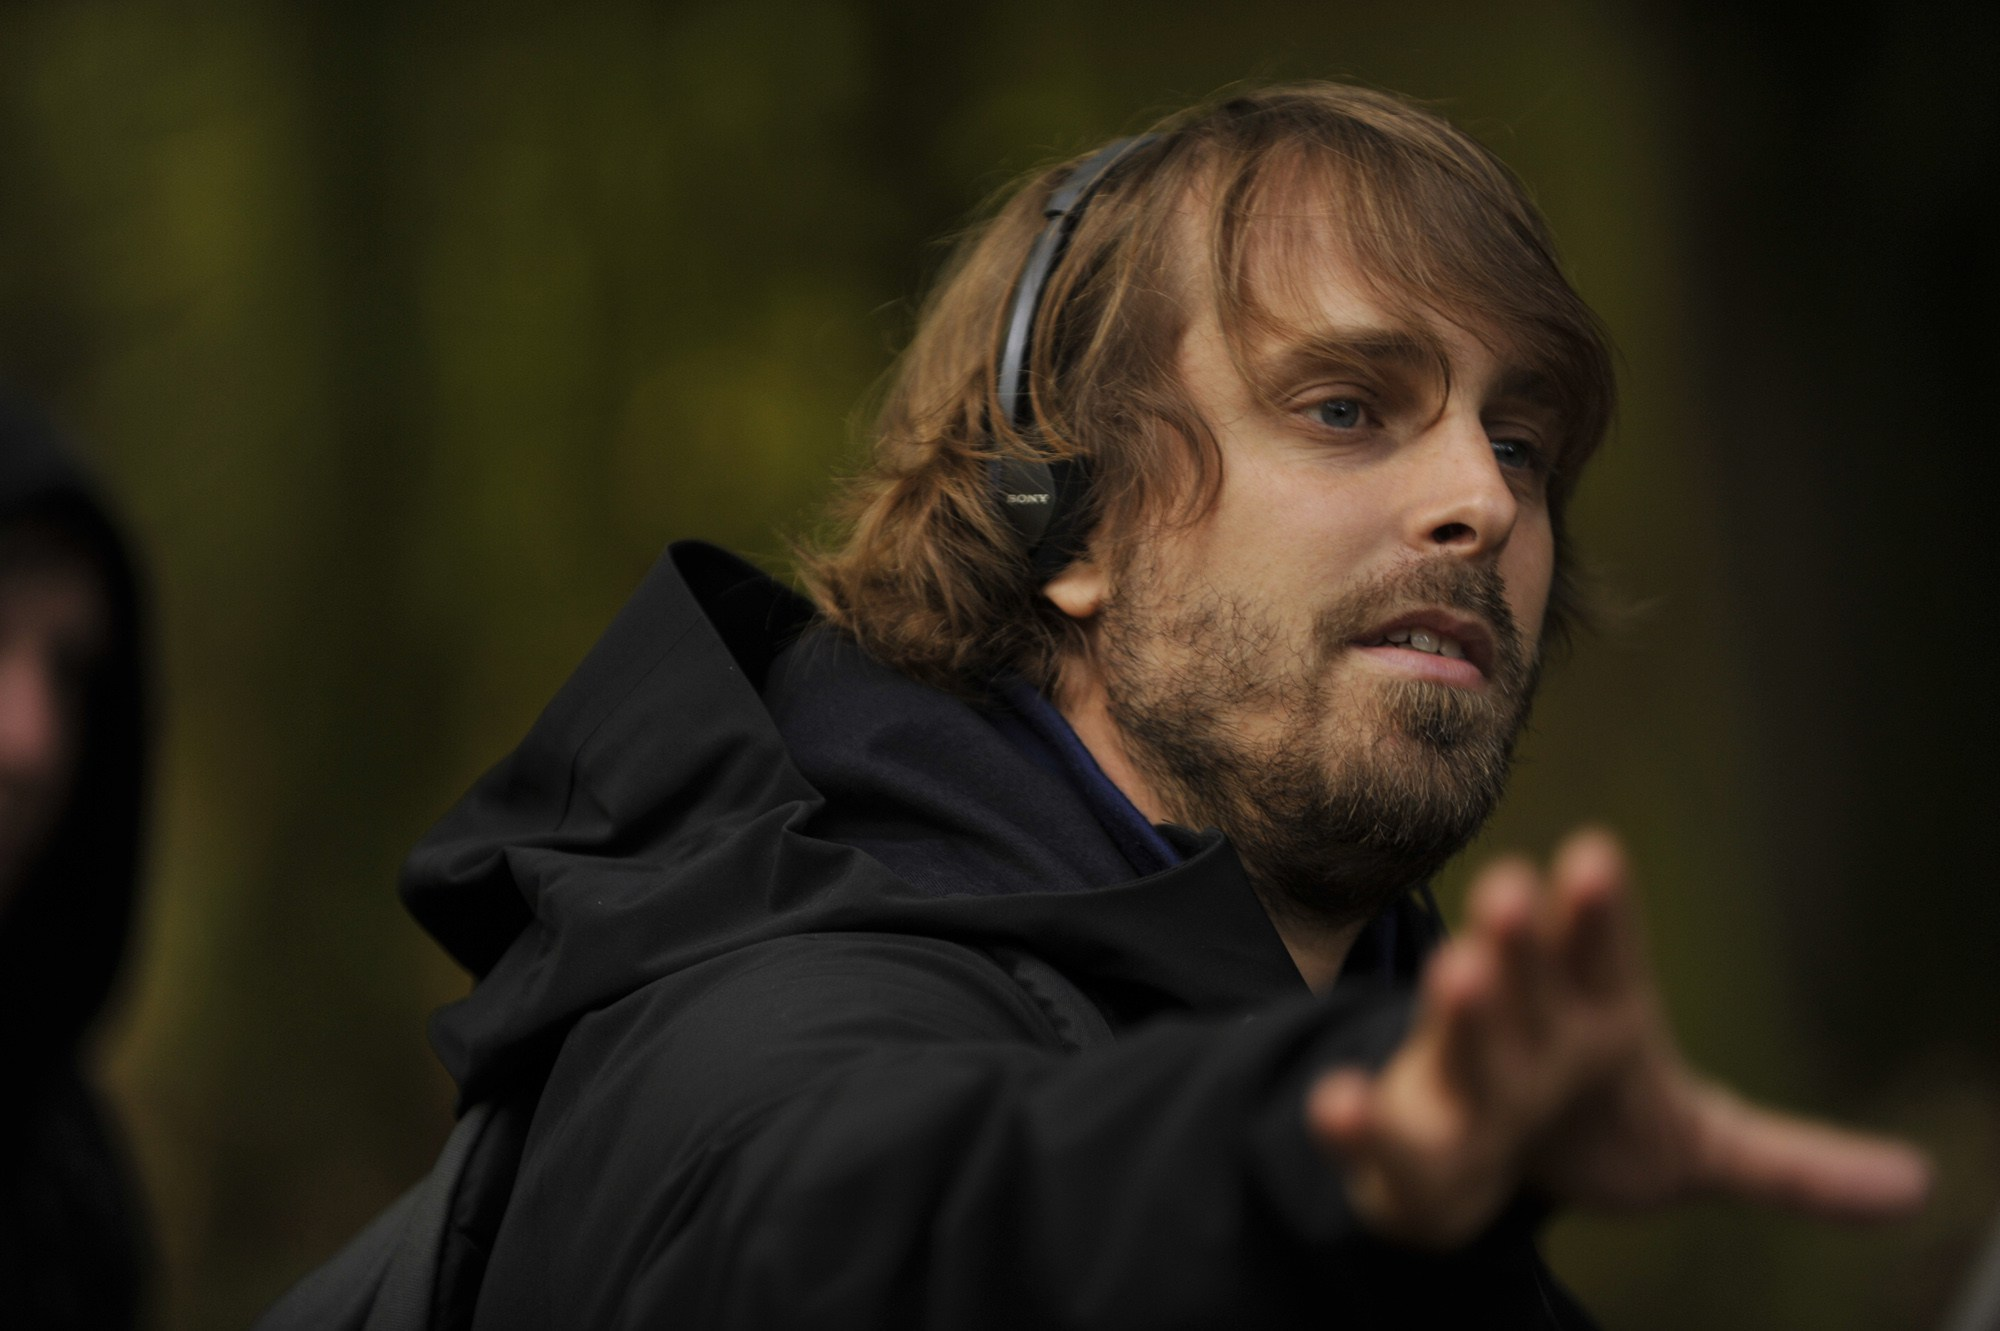 Alex Aja's New Horror Film Will 'Crawl' to Earlier July Release! - Bloody Disgusting